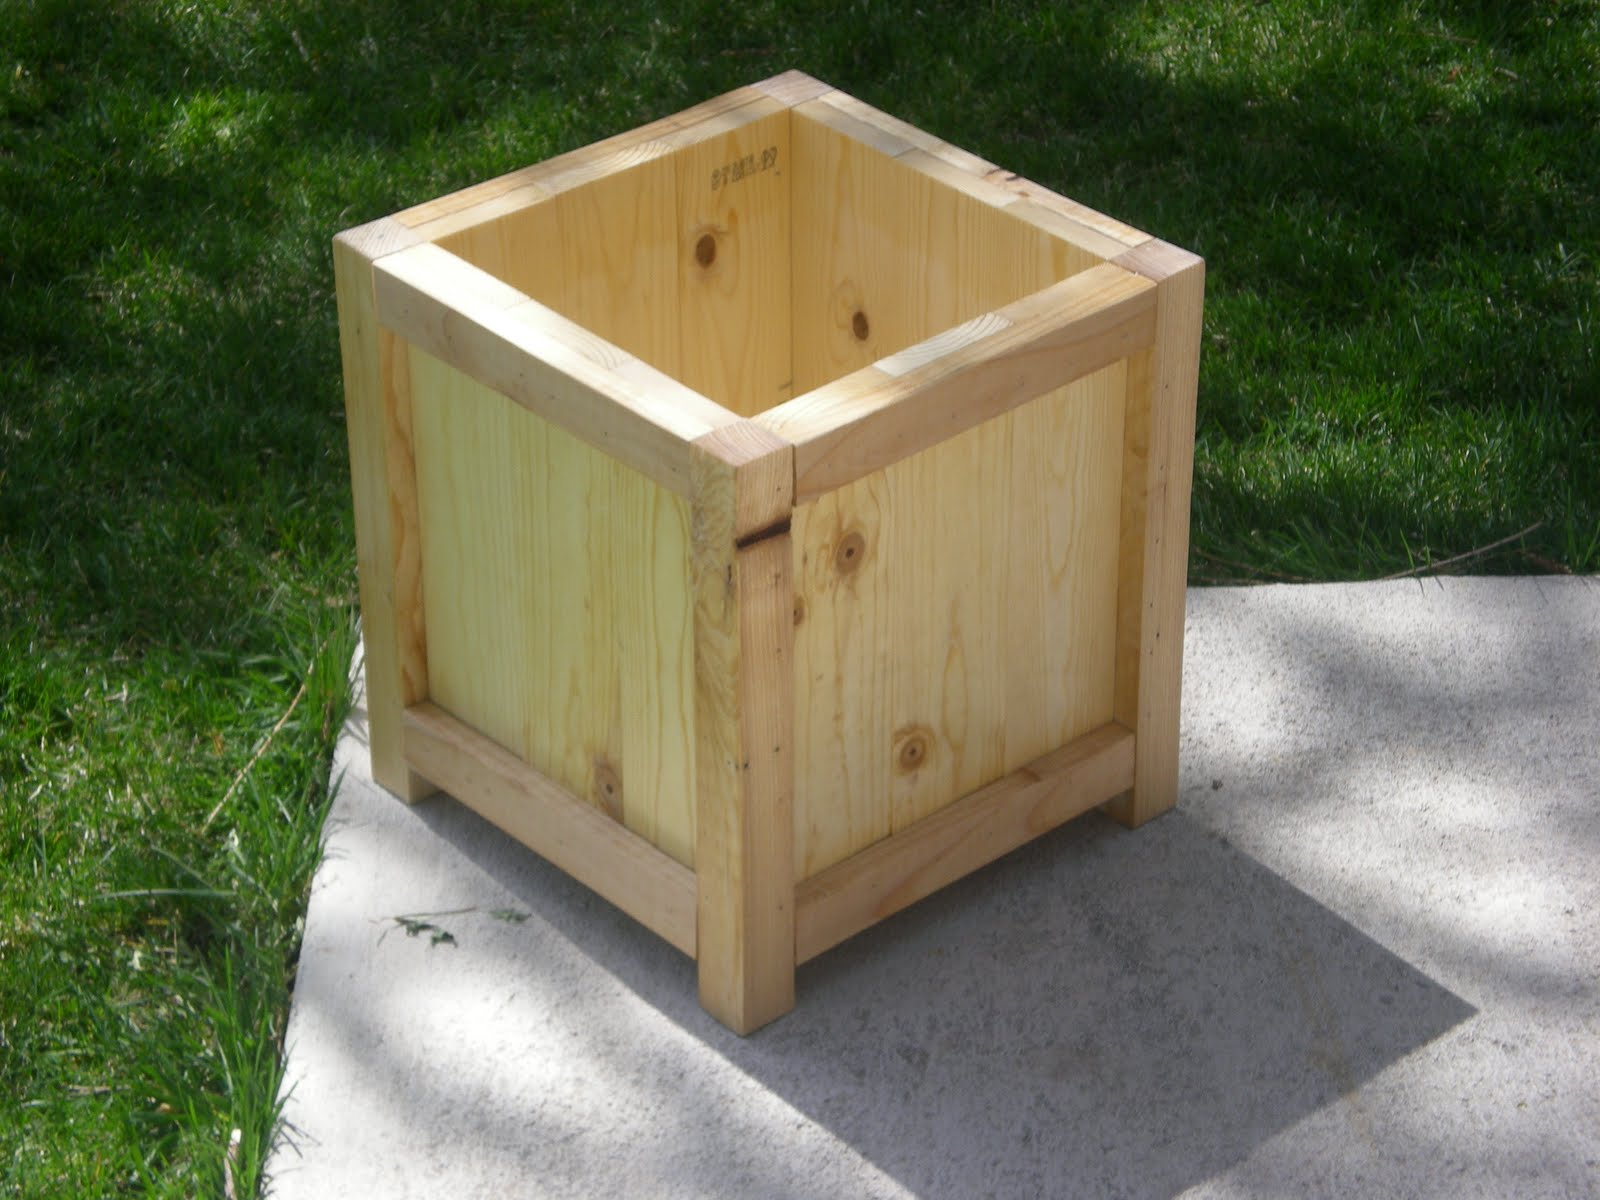 Woodworking wood flower box plan PDF Free Download